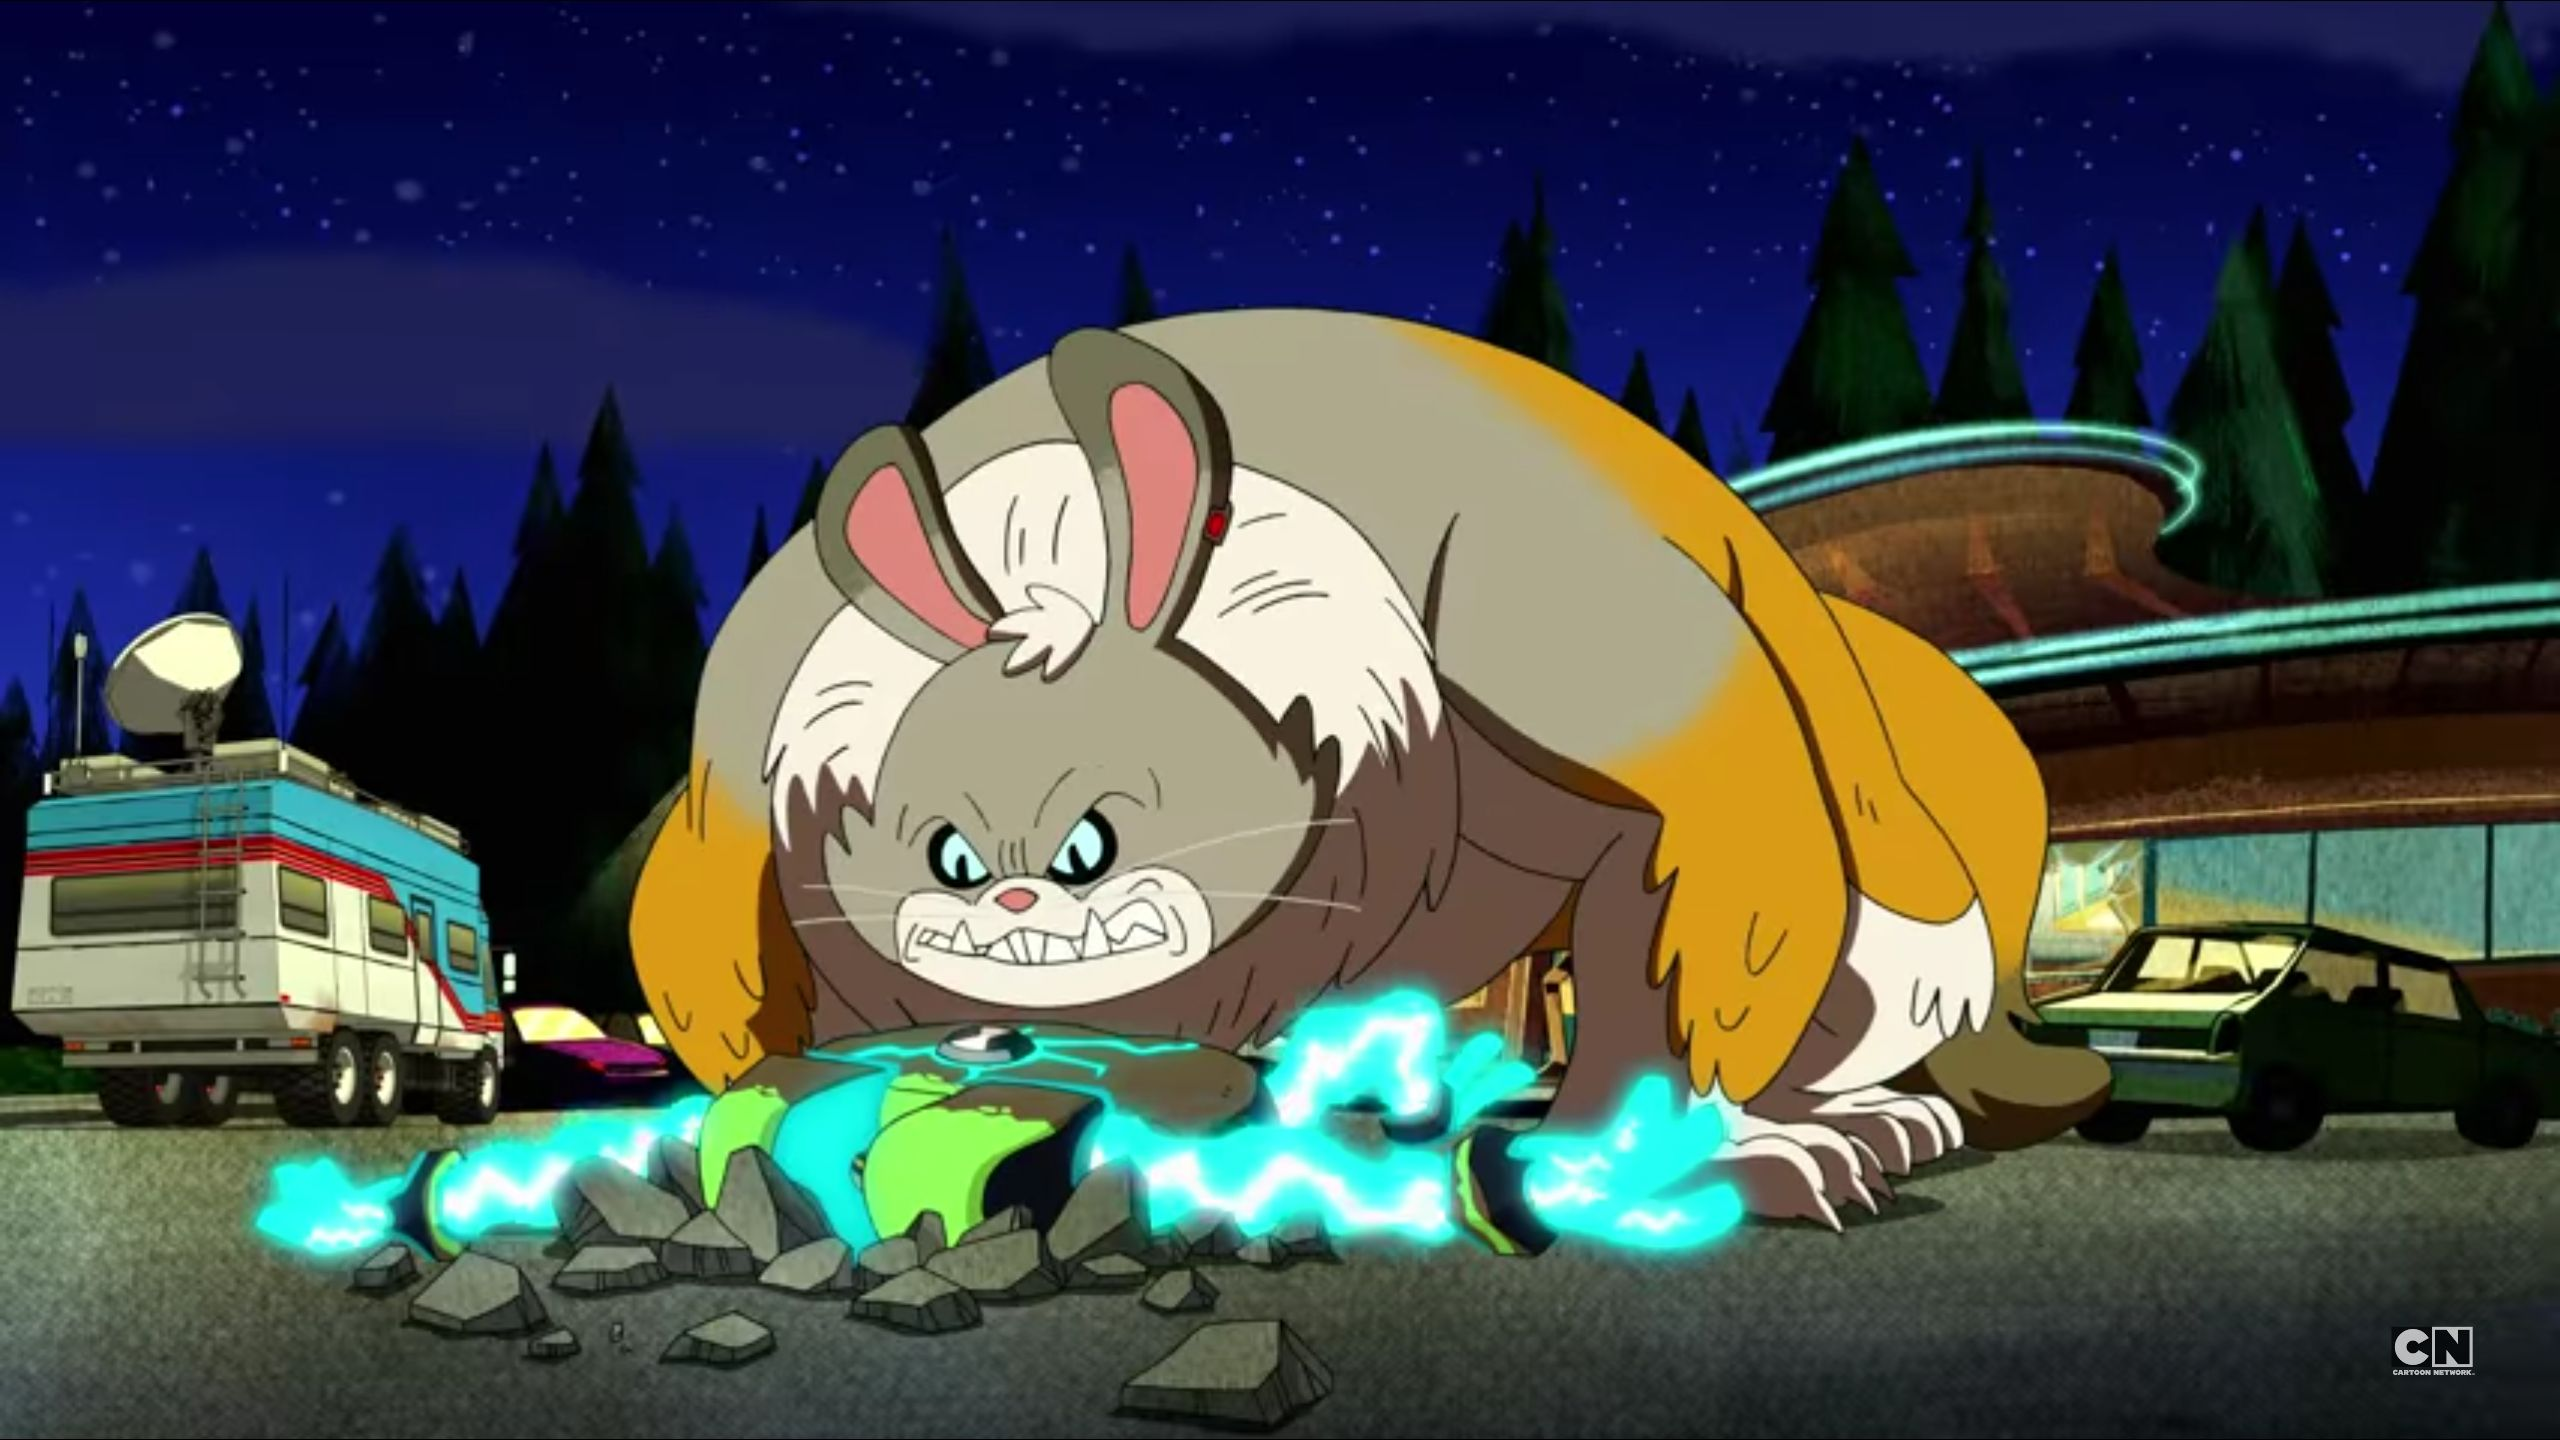 Big Chungus spotted again in Ben10 this morning